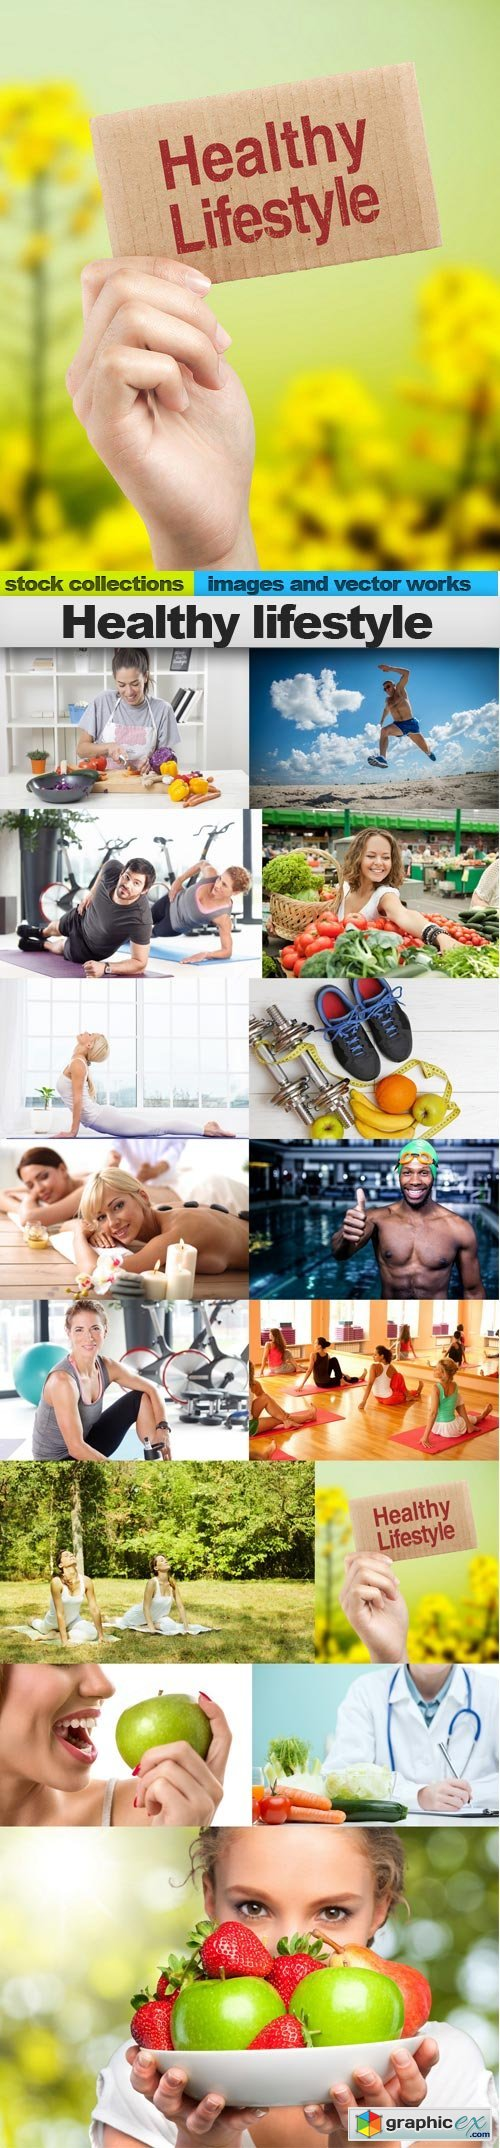 Healthy lifestyle, 15 x UHQ JPEG